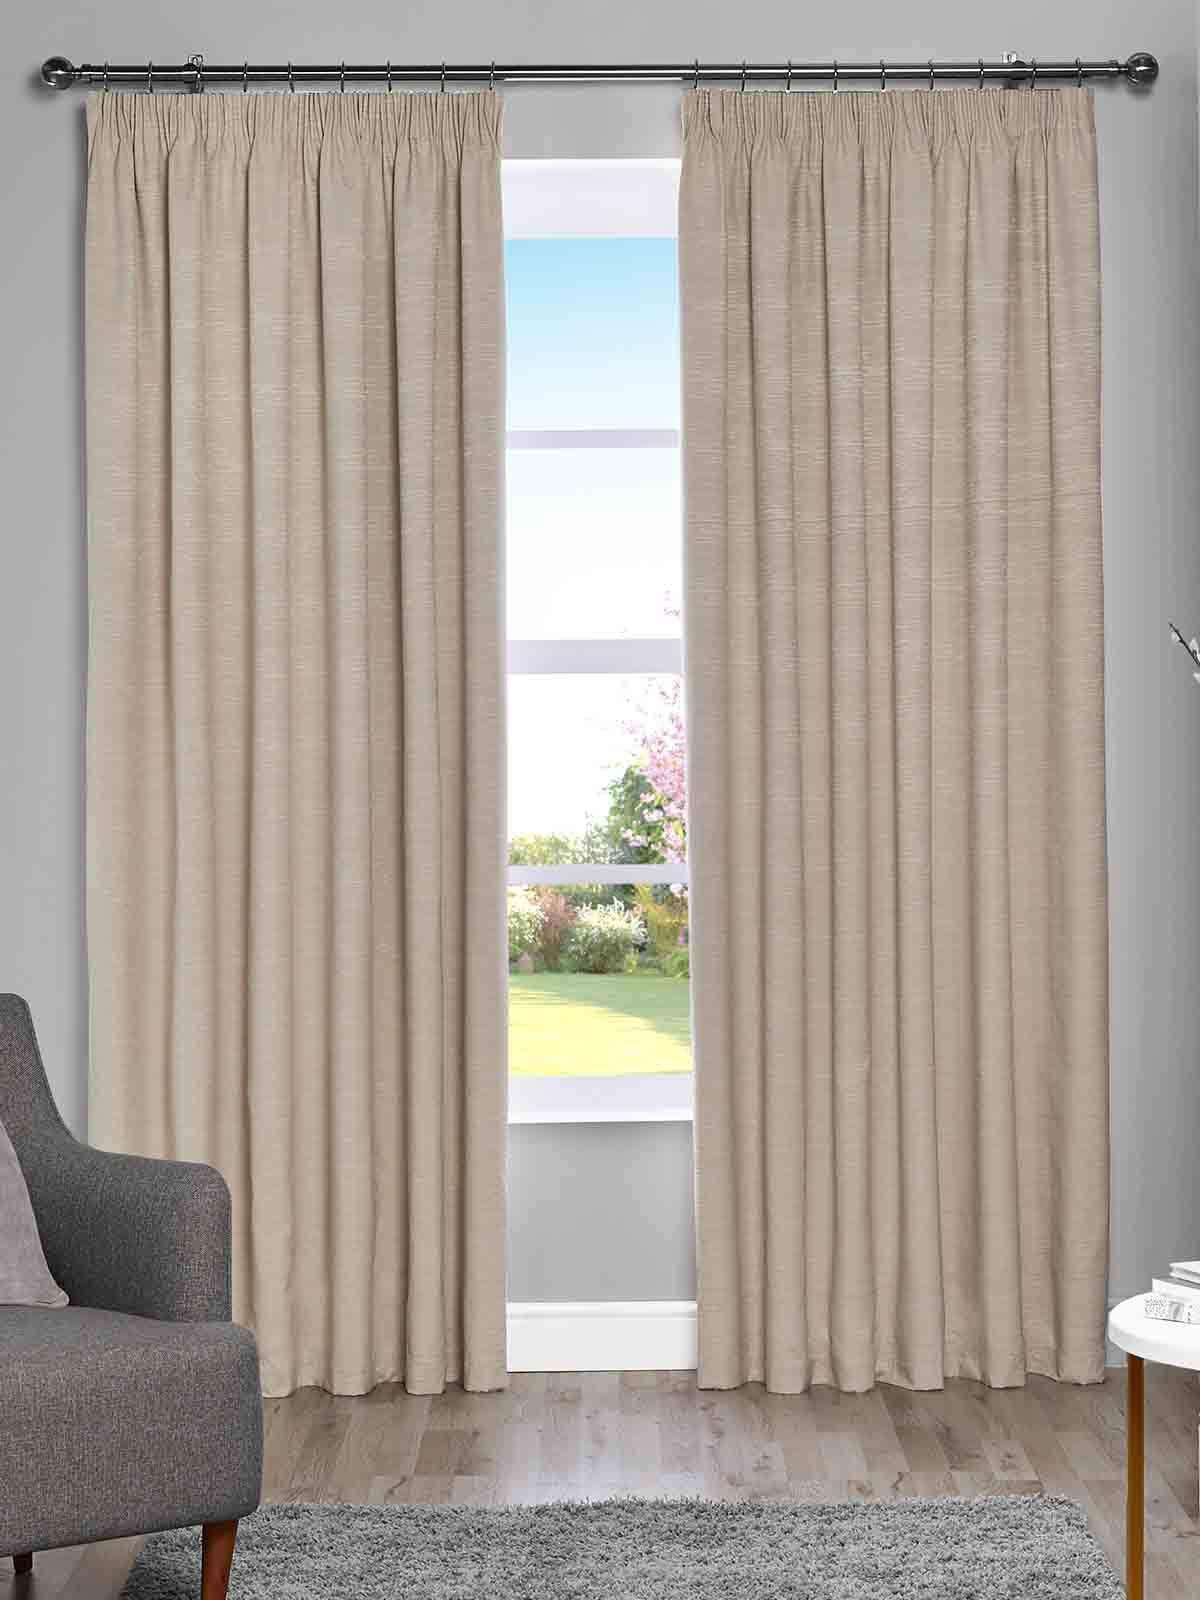 Harmony Blackout Pencil Pleat Curtains Throughout All Seasons Blackout Window Curtains (View 13 of 20)